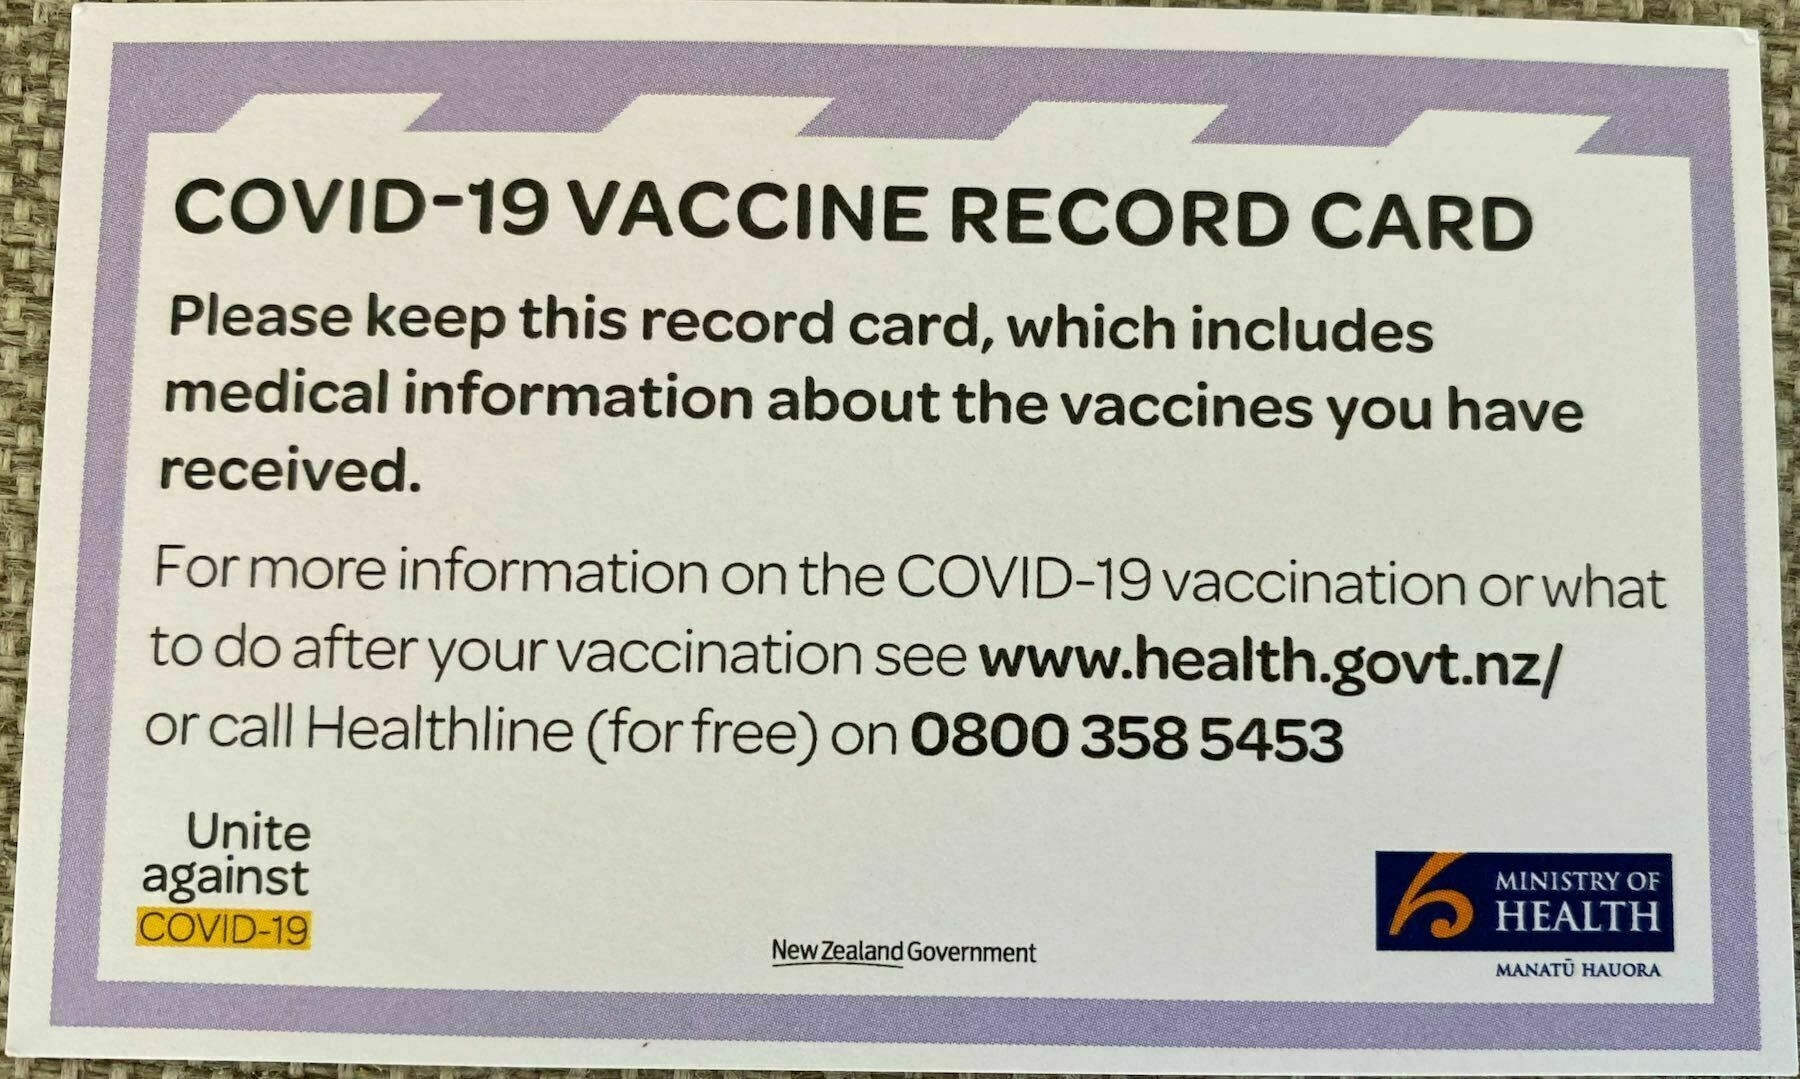 Vaccination record card front.